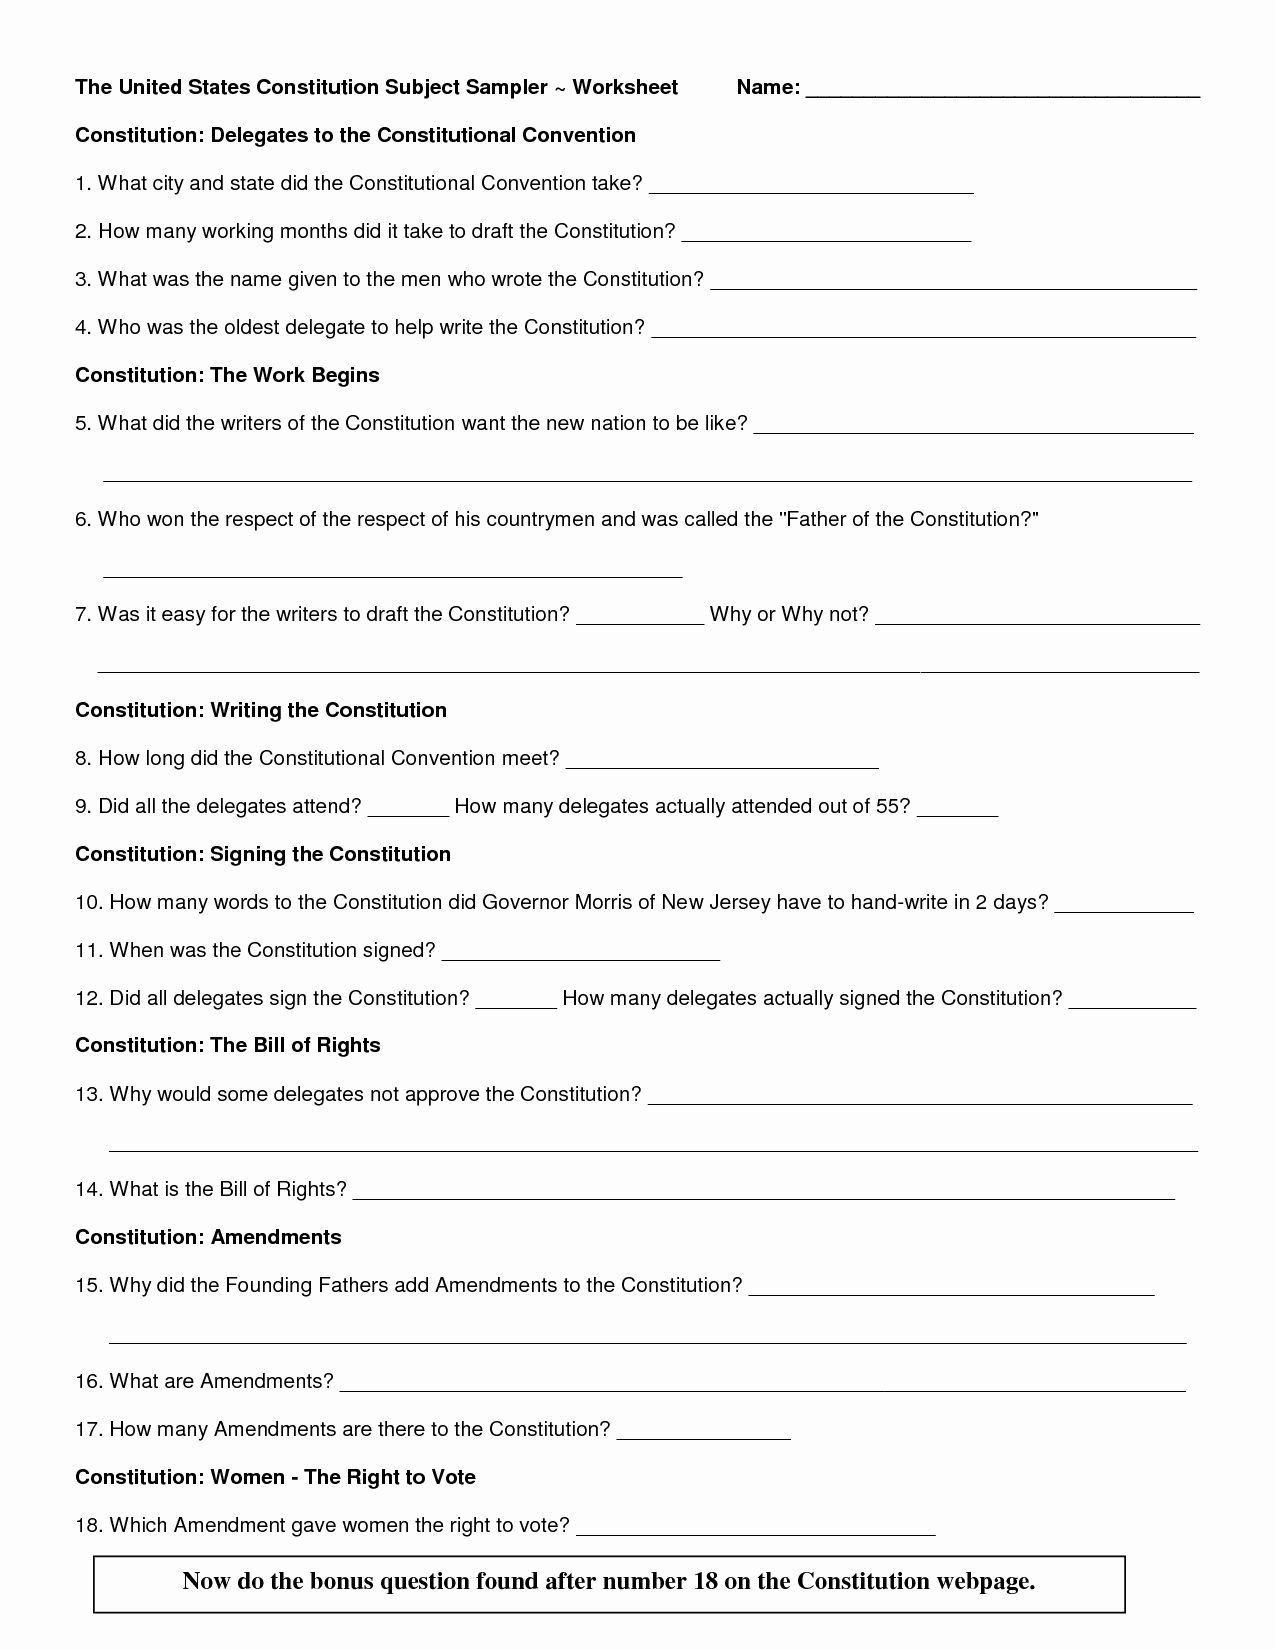 The Us Constitution Worksheet Luxury Constitution Test By